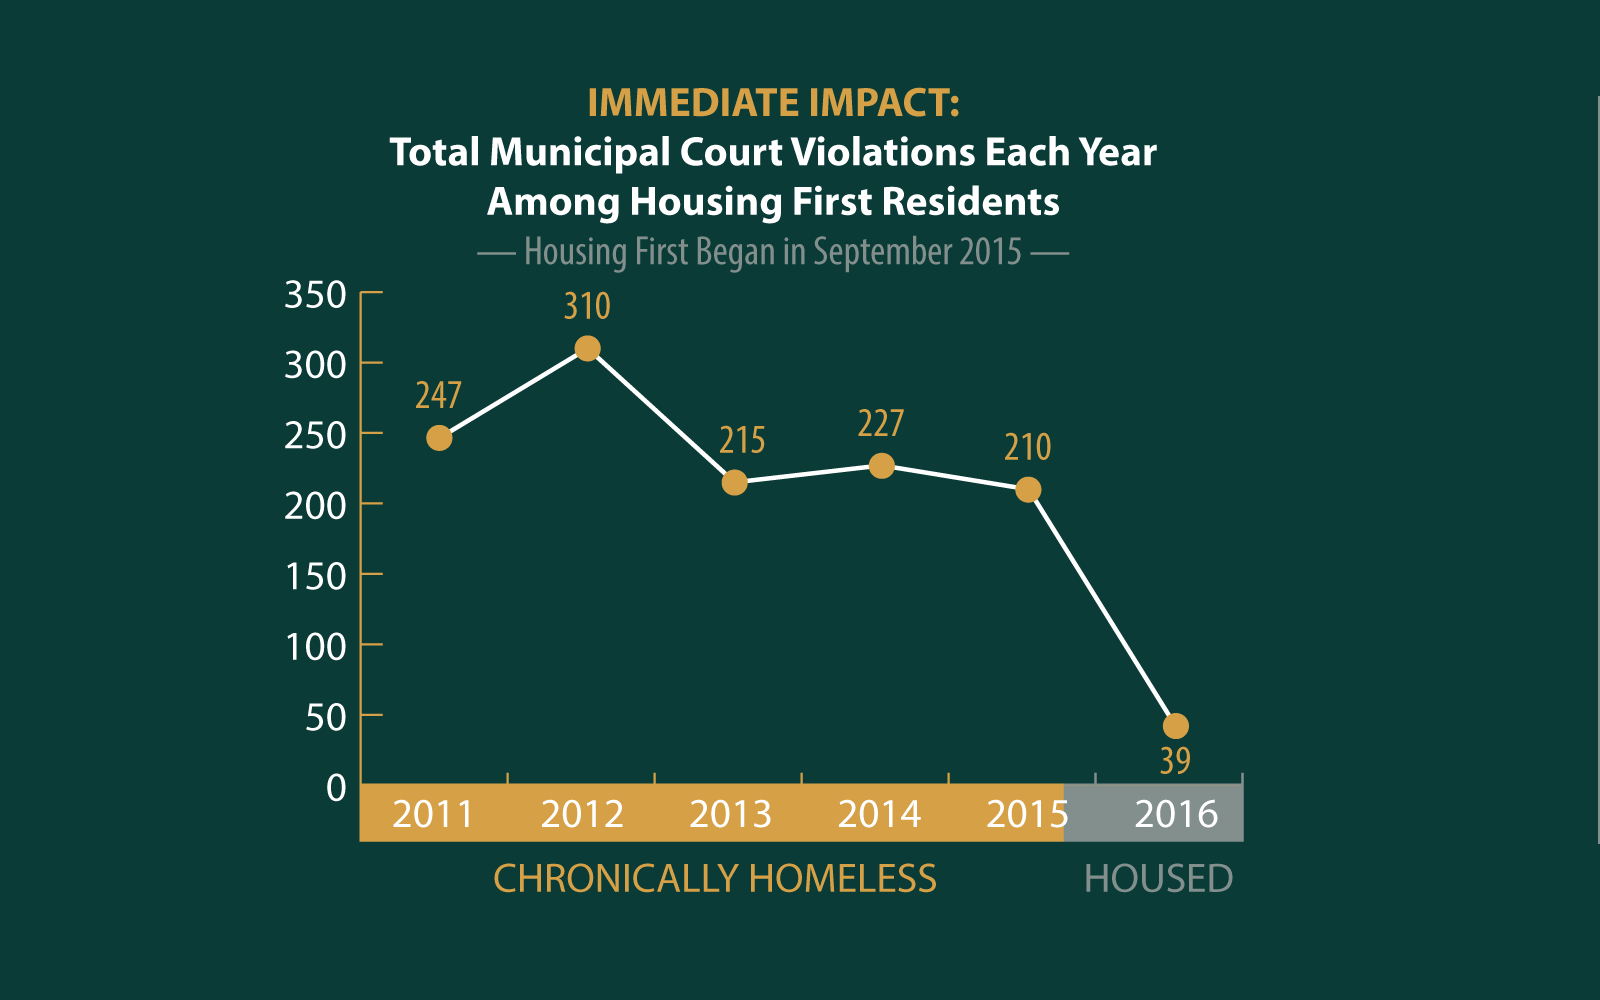 Total Municipal Court Violations Each Year Among Housing First Residents